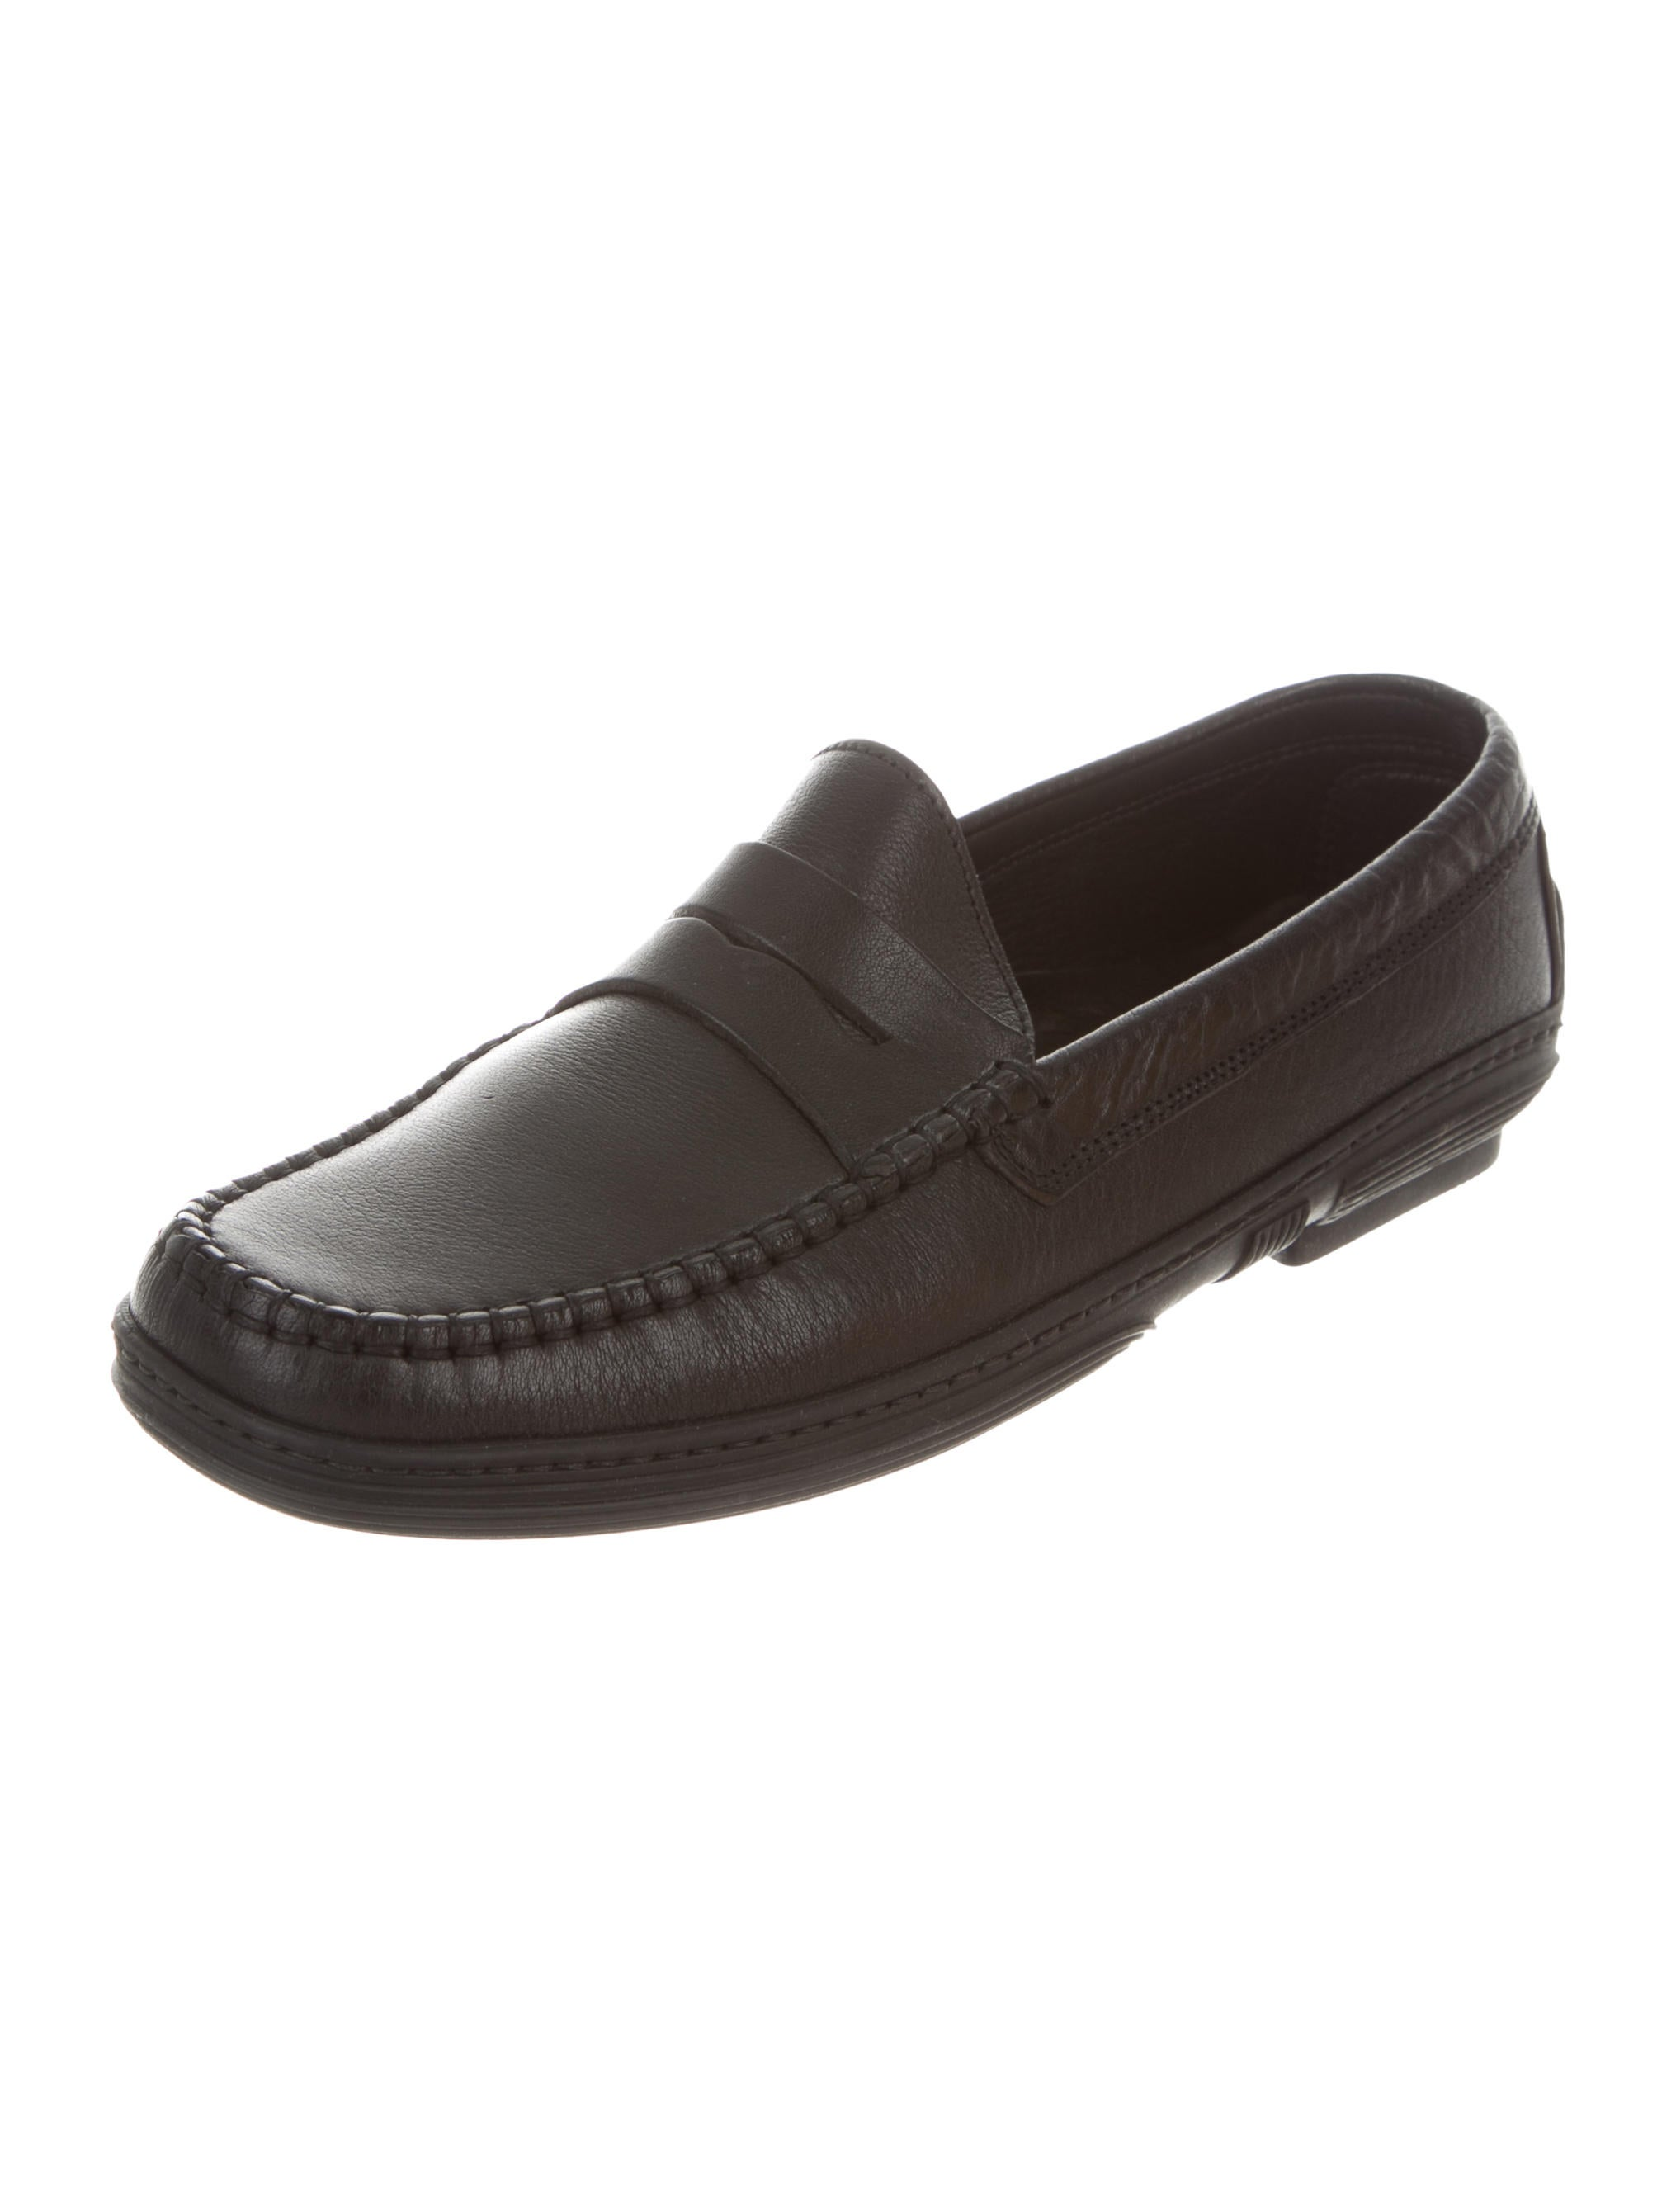 cheap browse Ghurka Leather Round-Toe Loafers cheap sale latest sale purchase new styles online lD71fCKlt